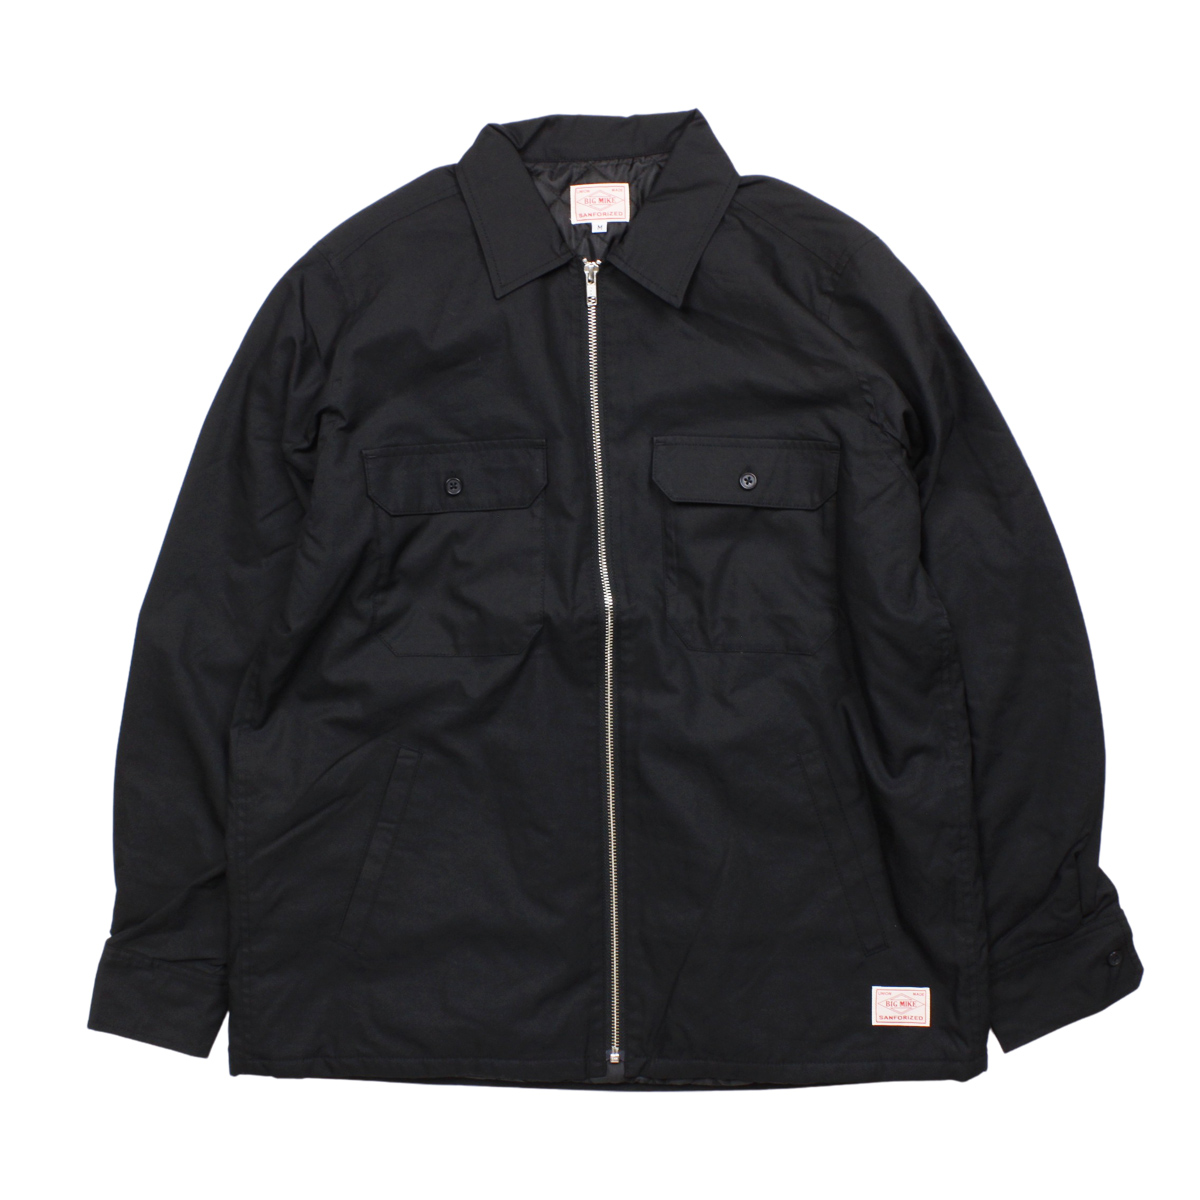 BIG MIKE ビッグマイク ZIP SHIRT OUTER